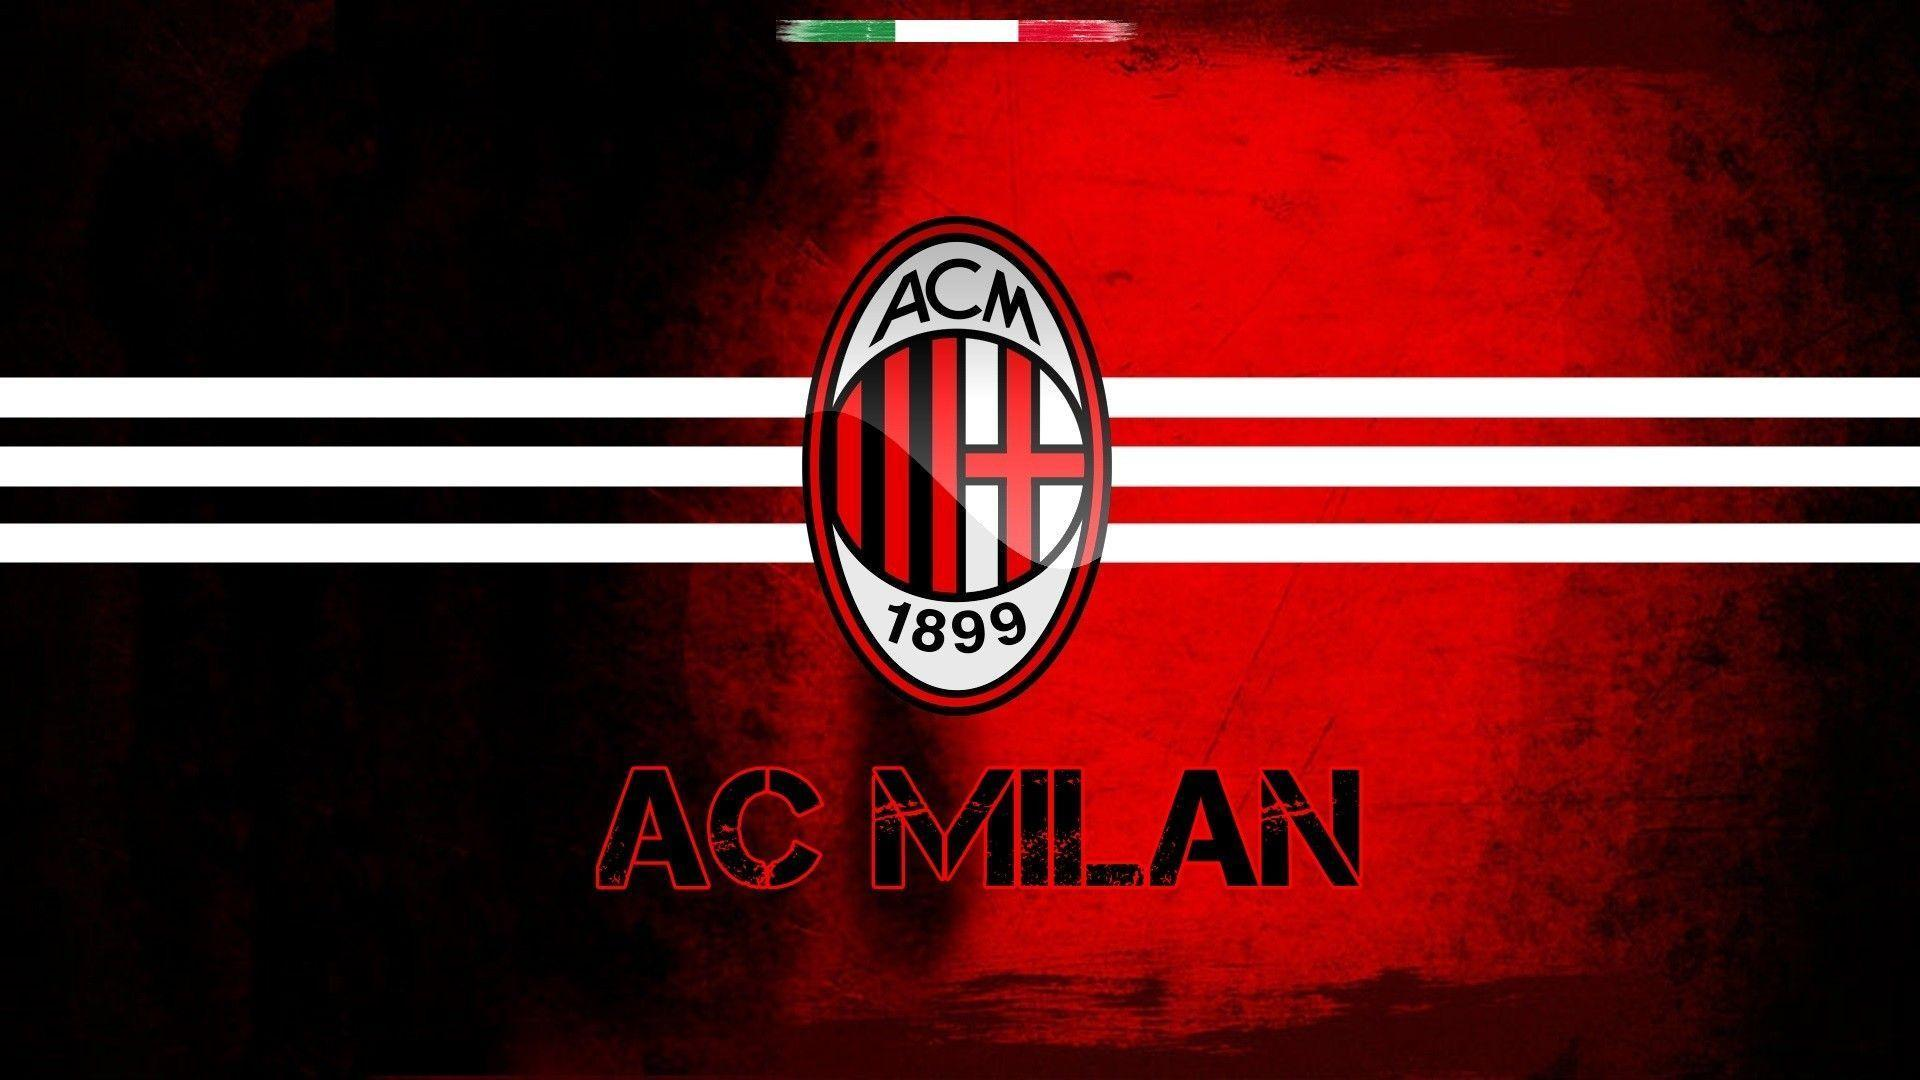 AC Milan, Sports, Soccer Clubs, Italy, Soccer Wallpapers HD